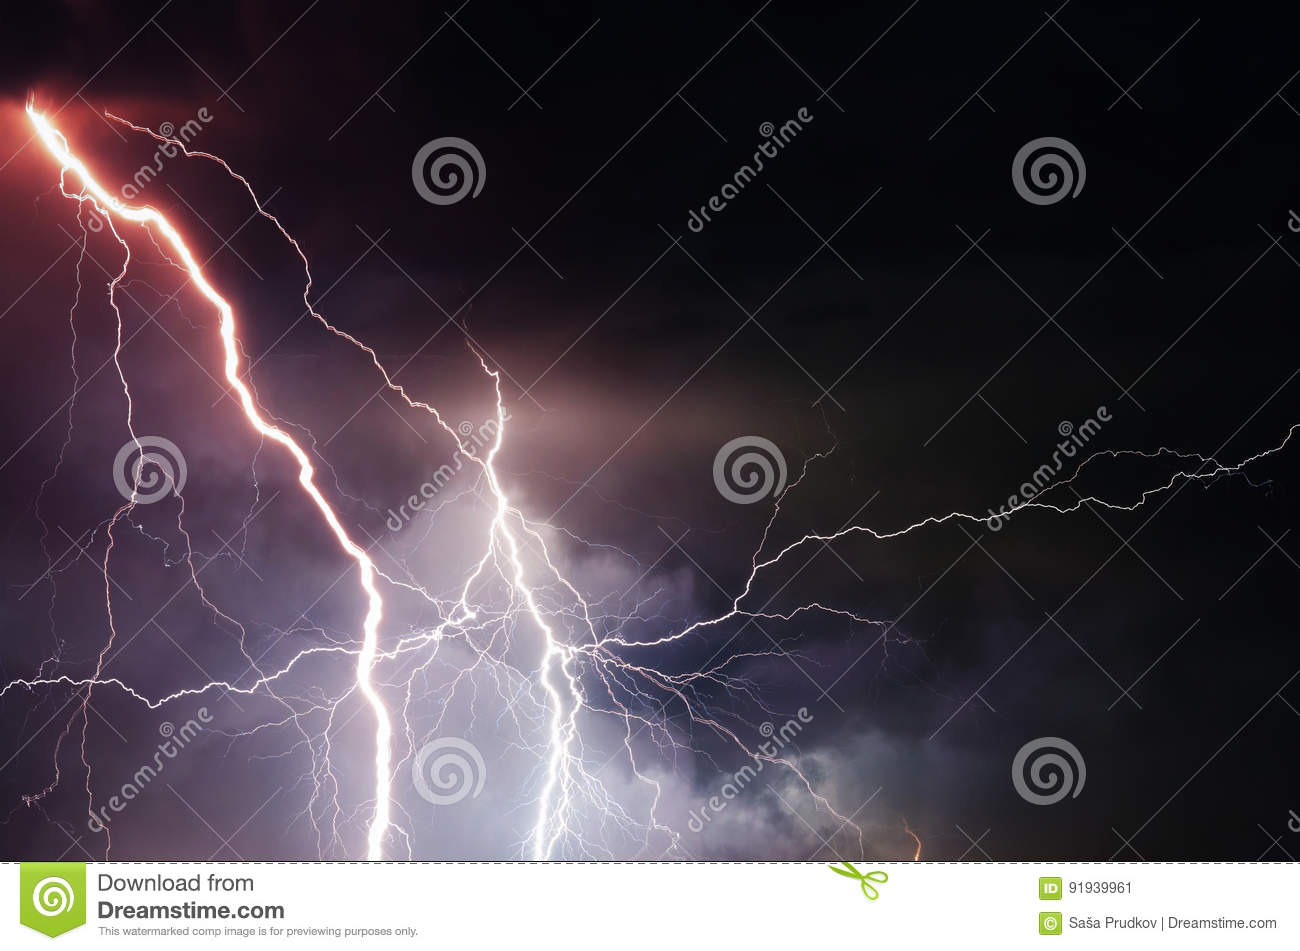 Heavy clouds bringing thunder, lightnings and storm